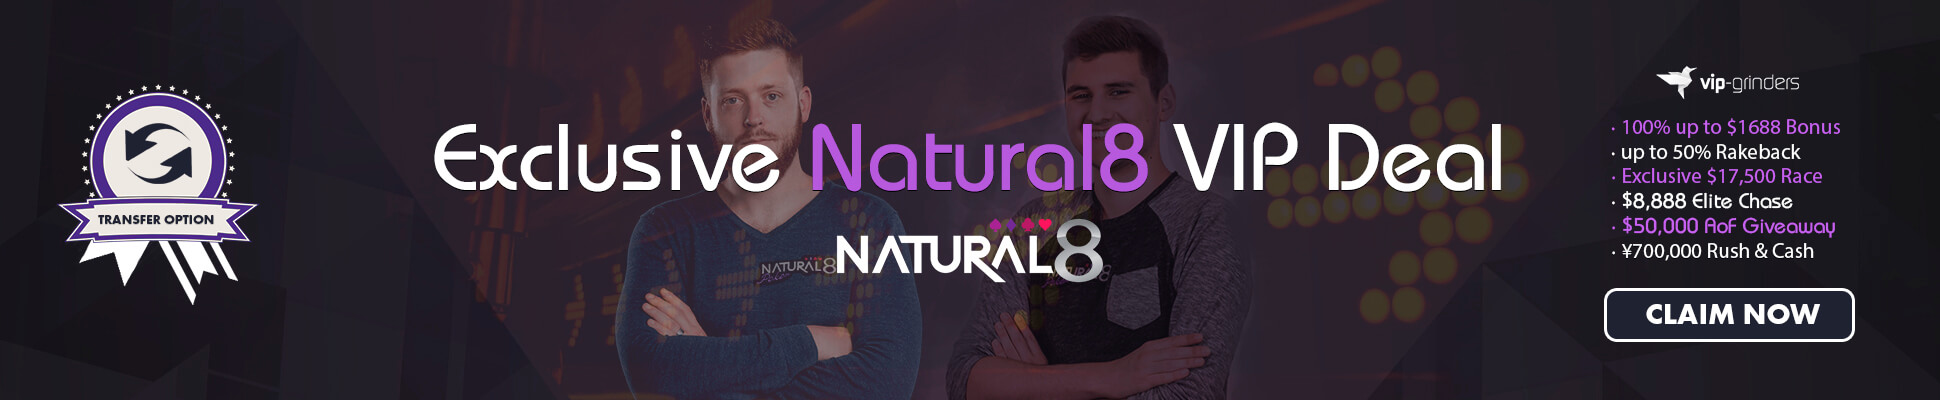 Exclusive Natural8 VIP Deal